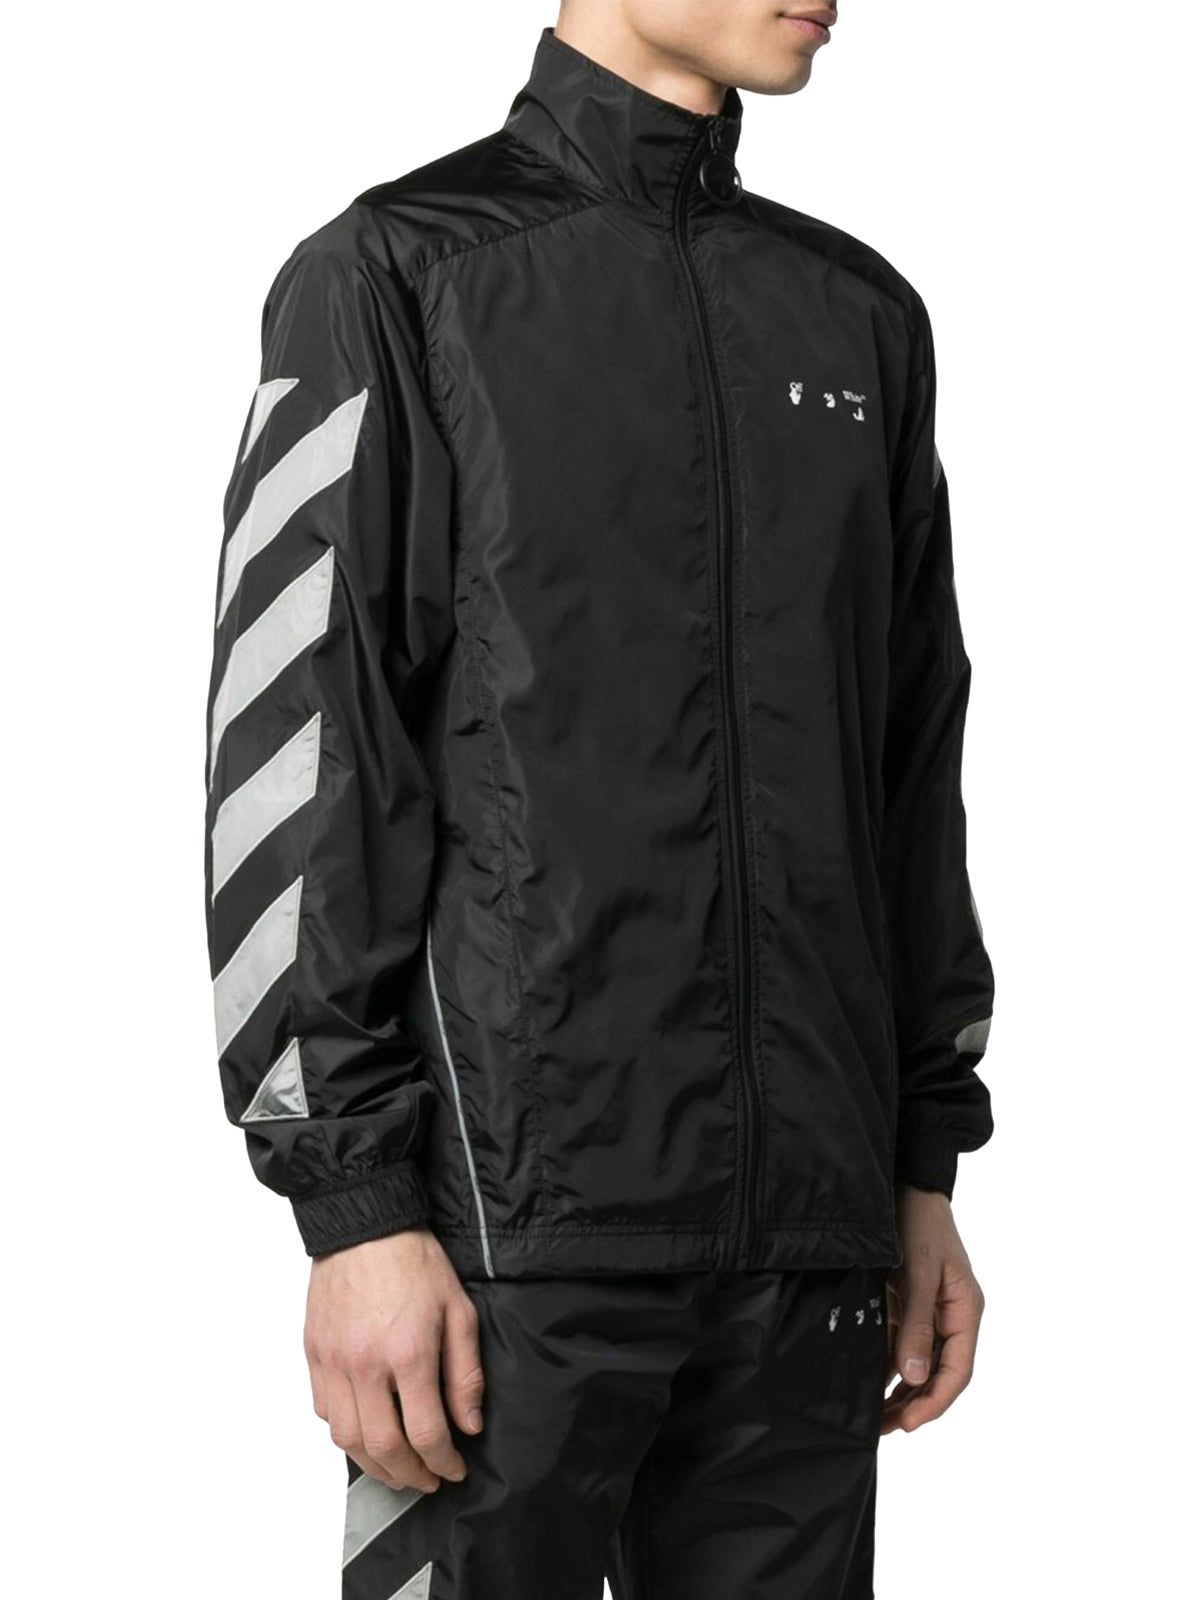 Diagonals Track Jacket